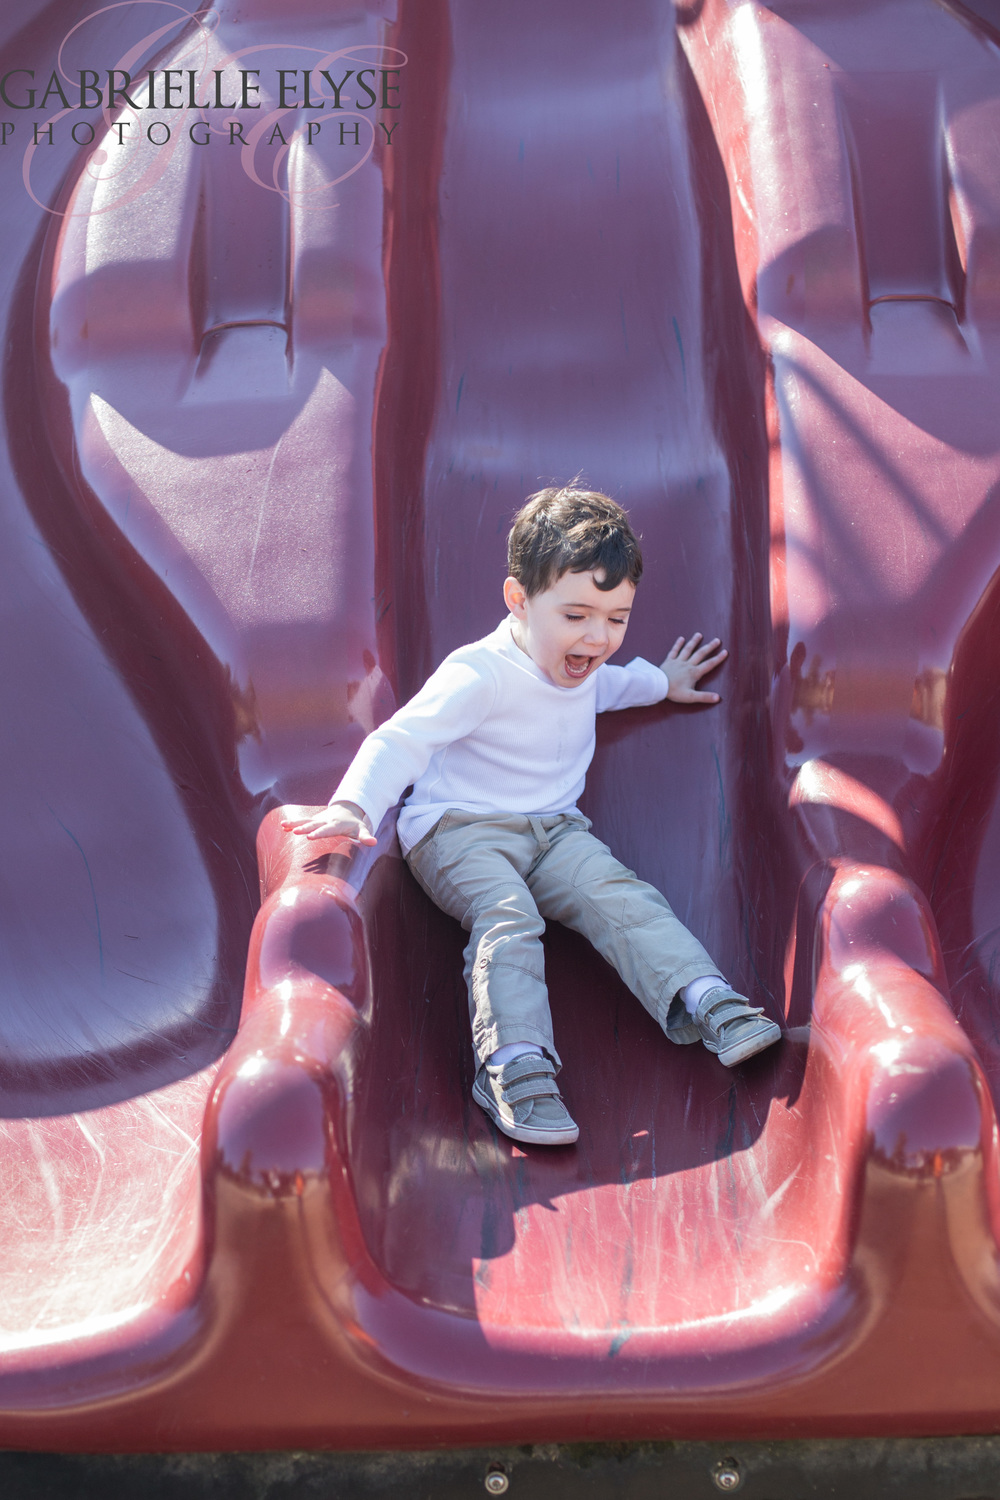 He is truly a ham!  And that was one bumpy slide!!!